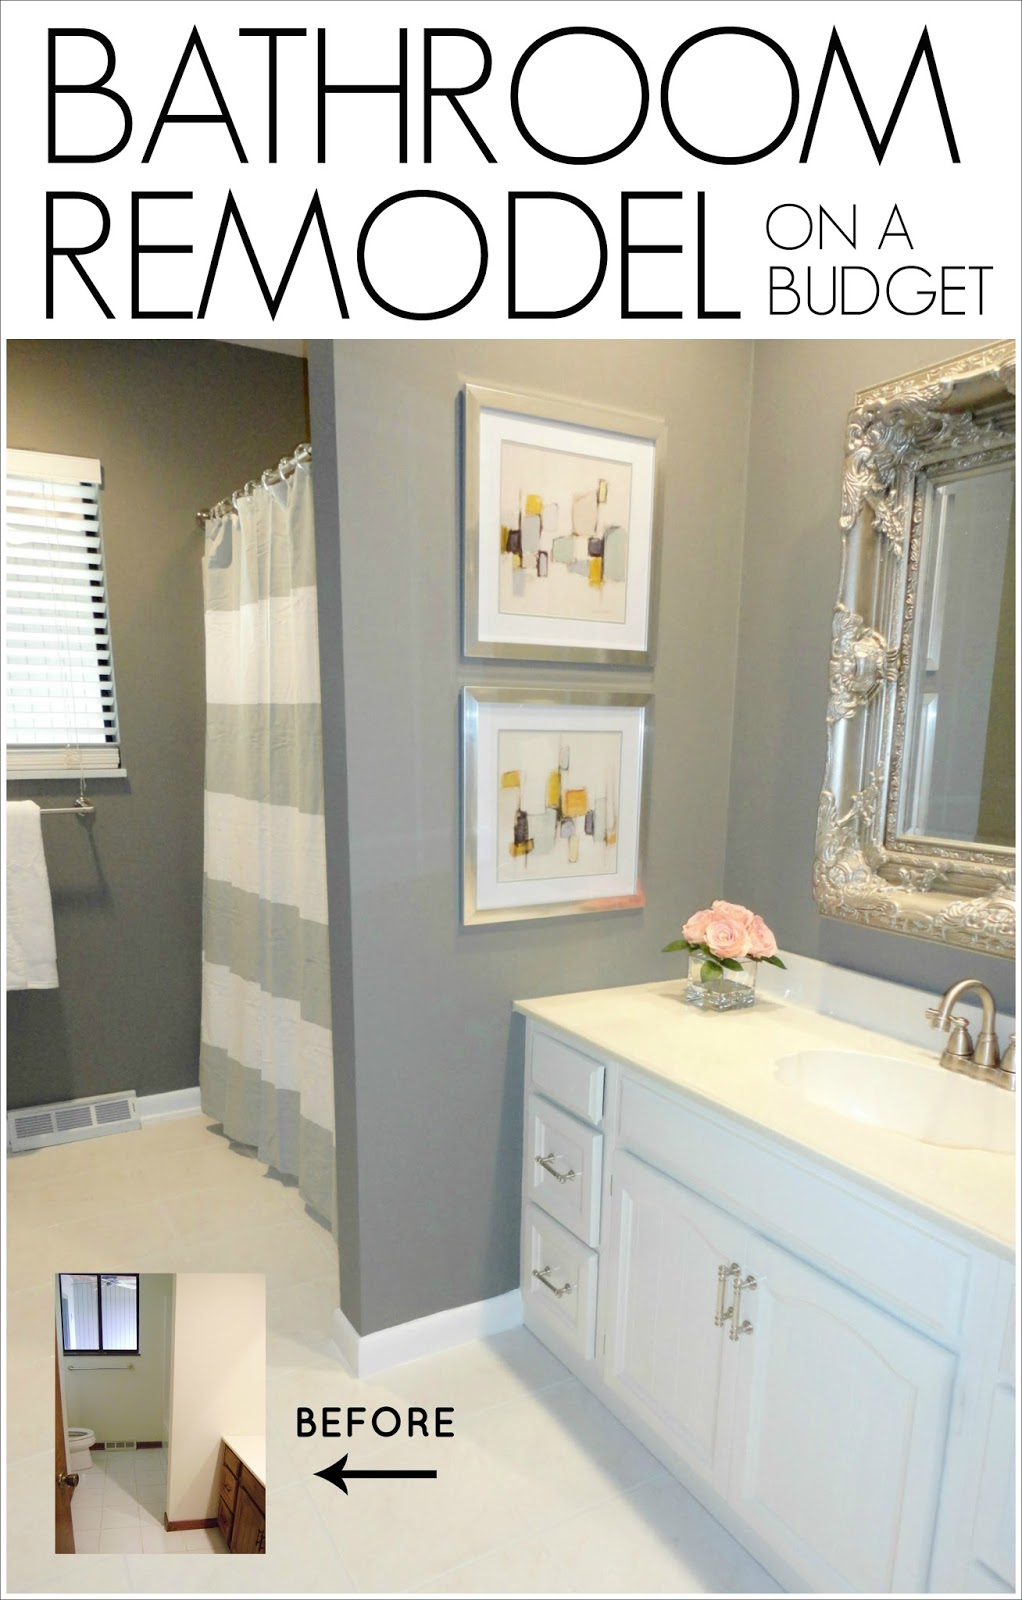 LiveLoveDIY DIY Bathroom Remodel On A Budget - Bath remodel ideas budget